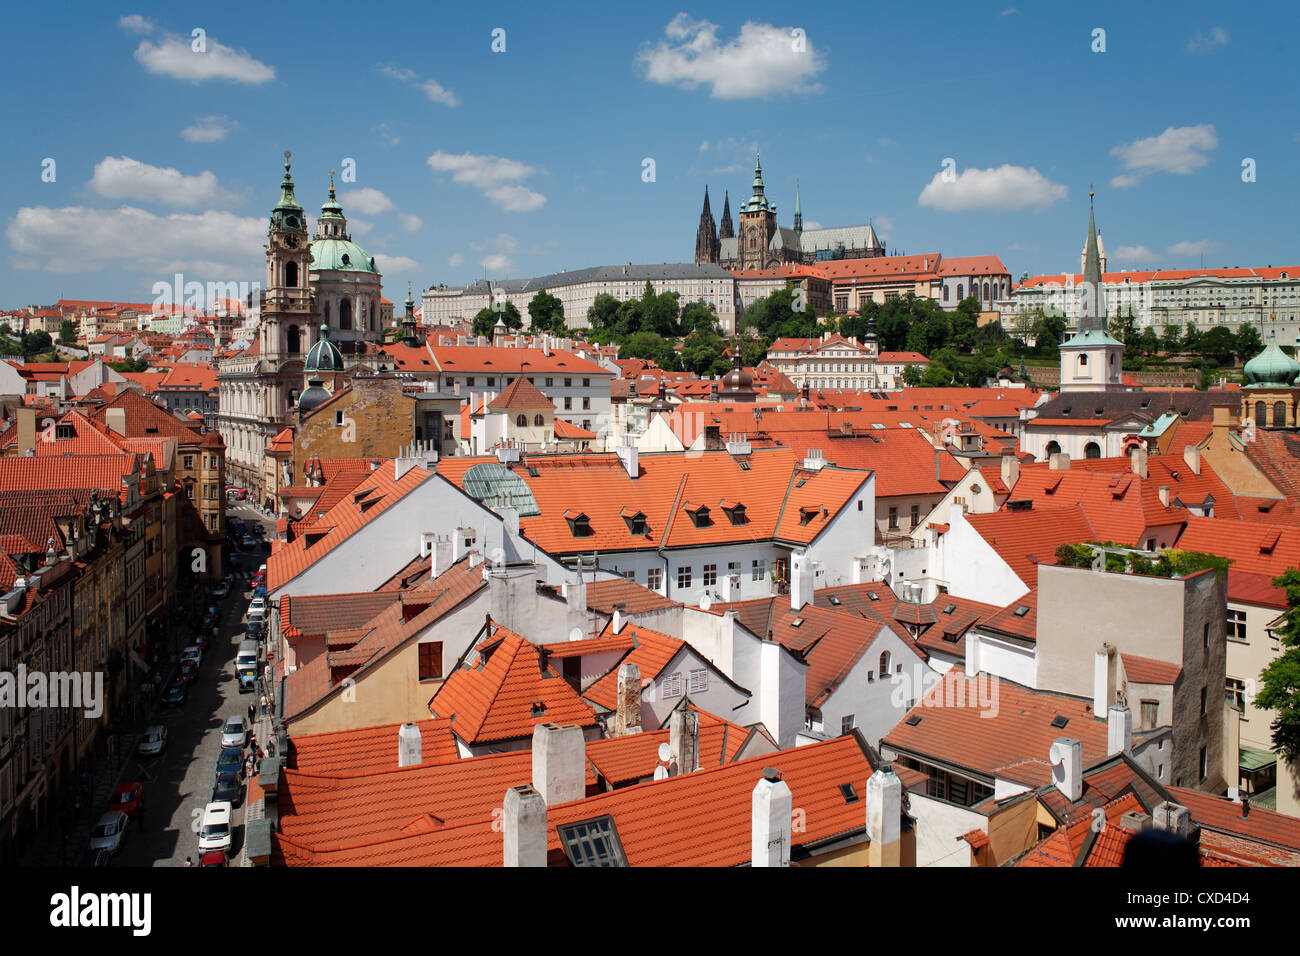 St. Vitus cathedral and St. Nicholas church, Prague, Czech Republic, Europe - Stock Image